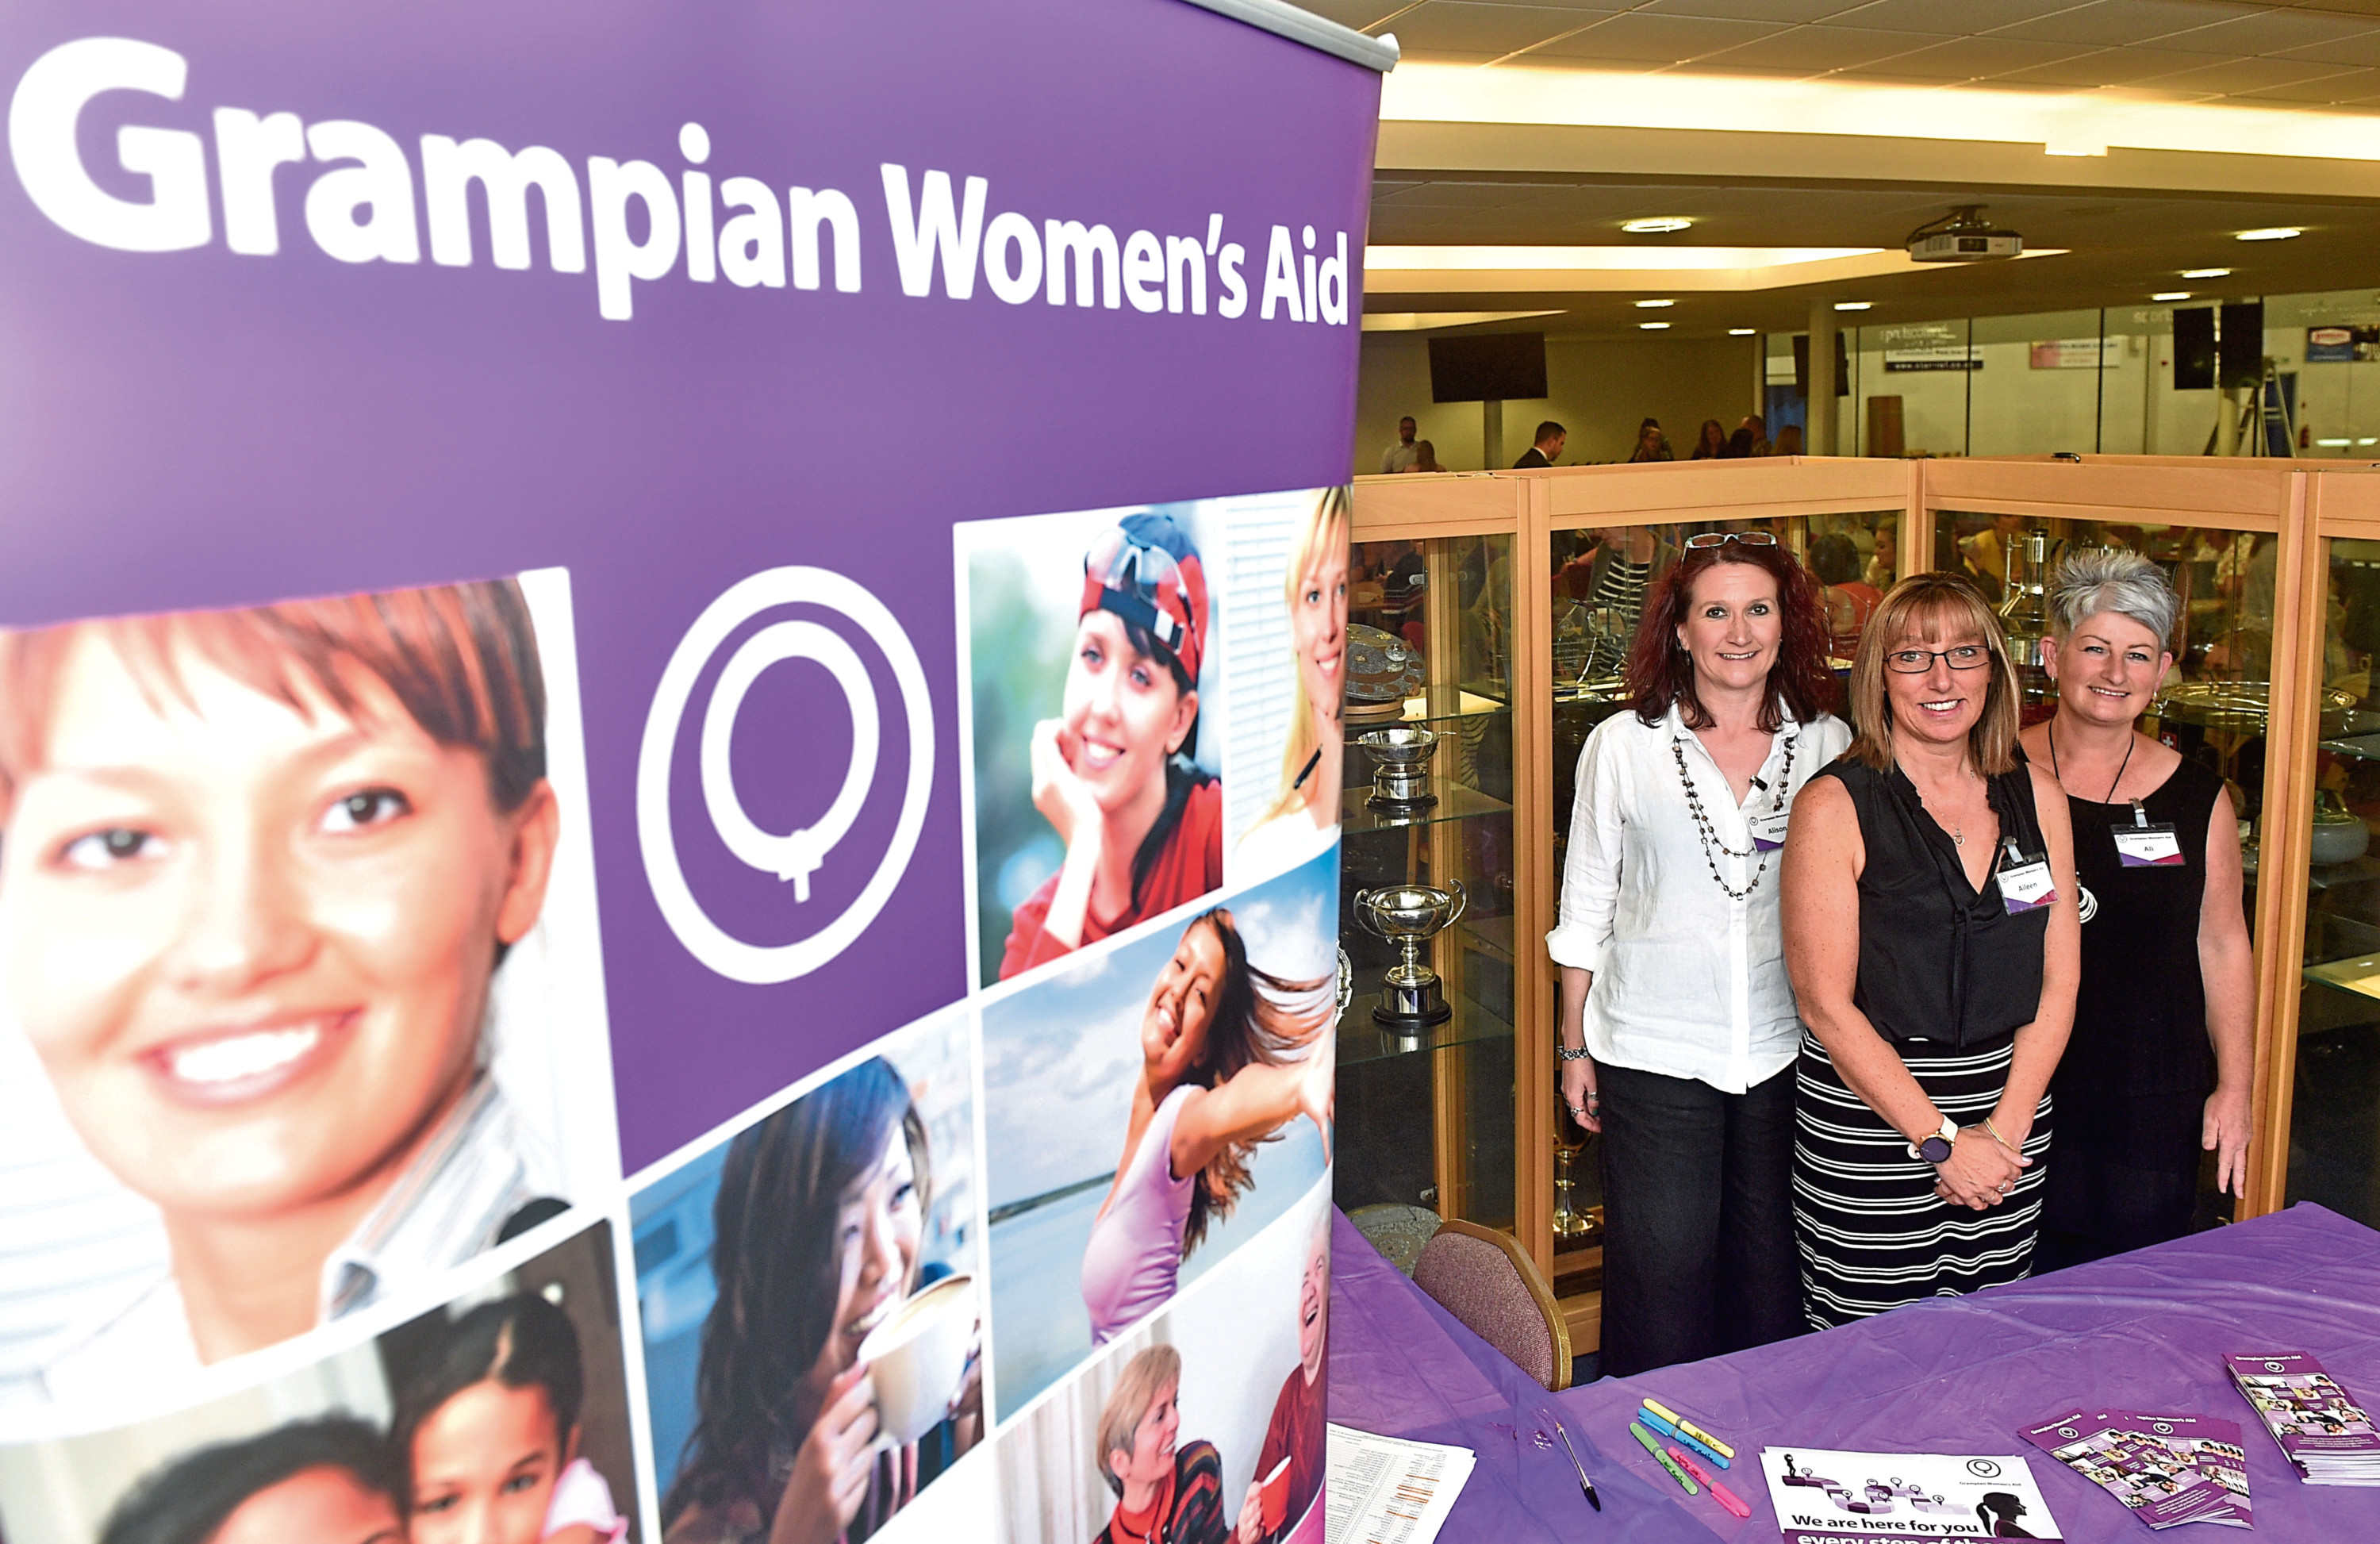 Grampian Women's Aid staff Ali MacKenzie, Aileen Forbes and Alison Hay are eager to see their campaign come to fruition